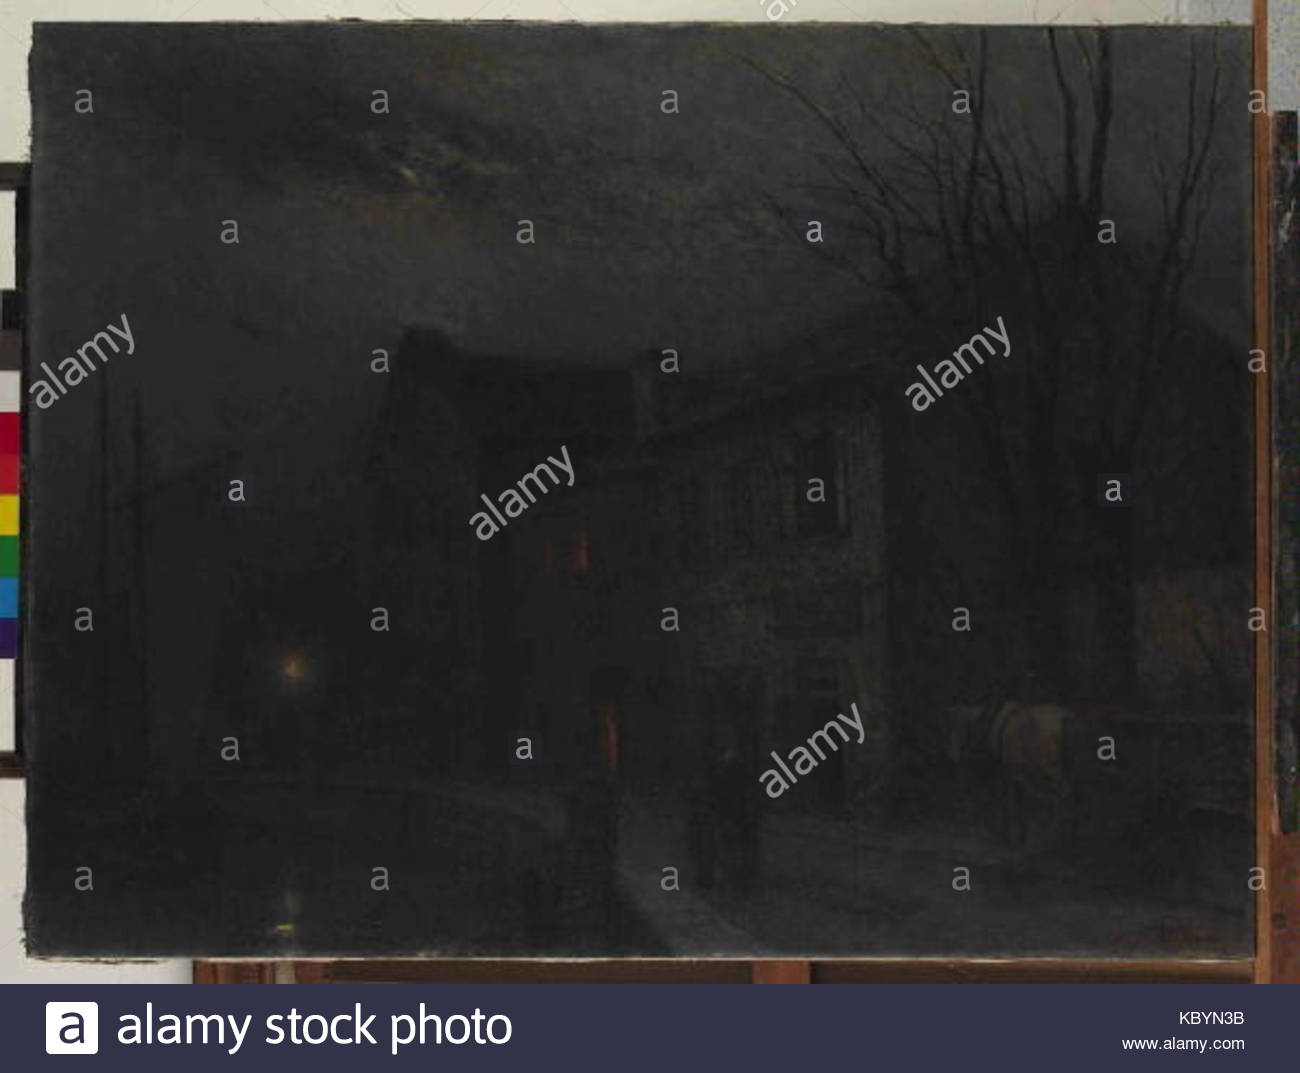 Jakub Schikaneder 27. 2. 1855 15. 11. 1924   Ulicka na brehu Stock Photo